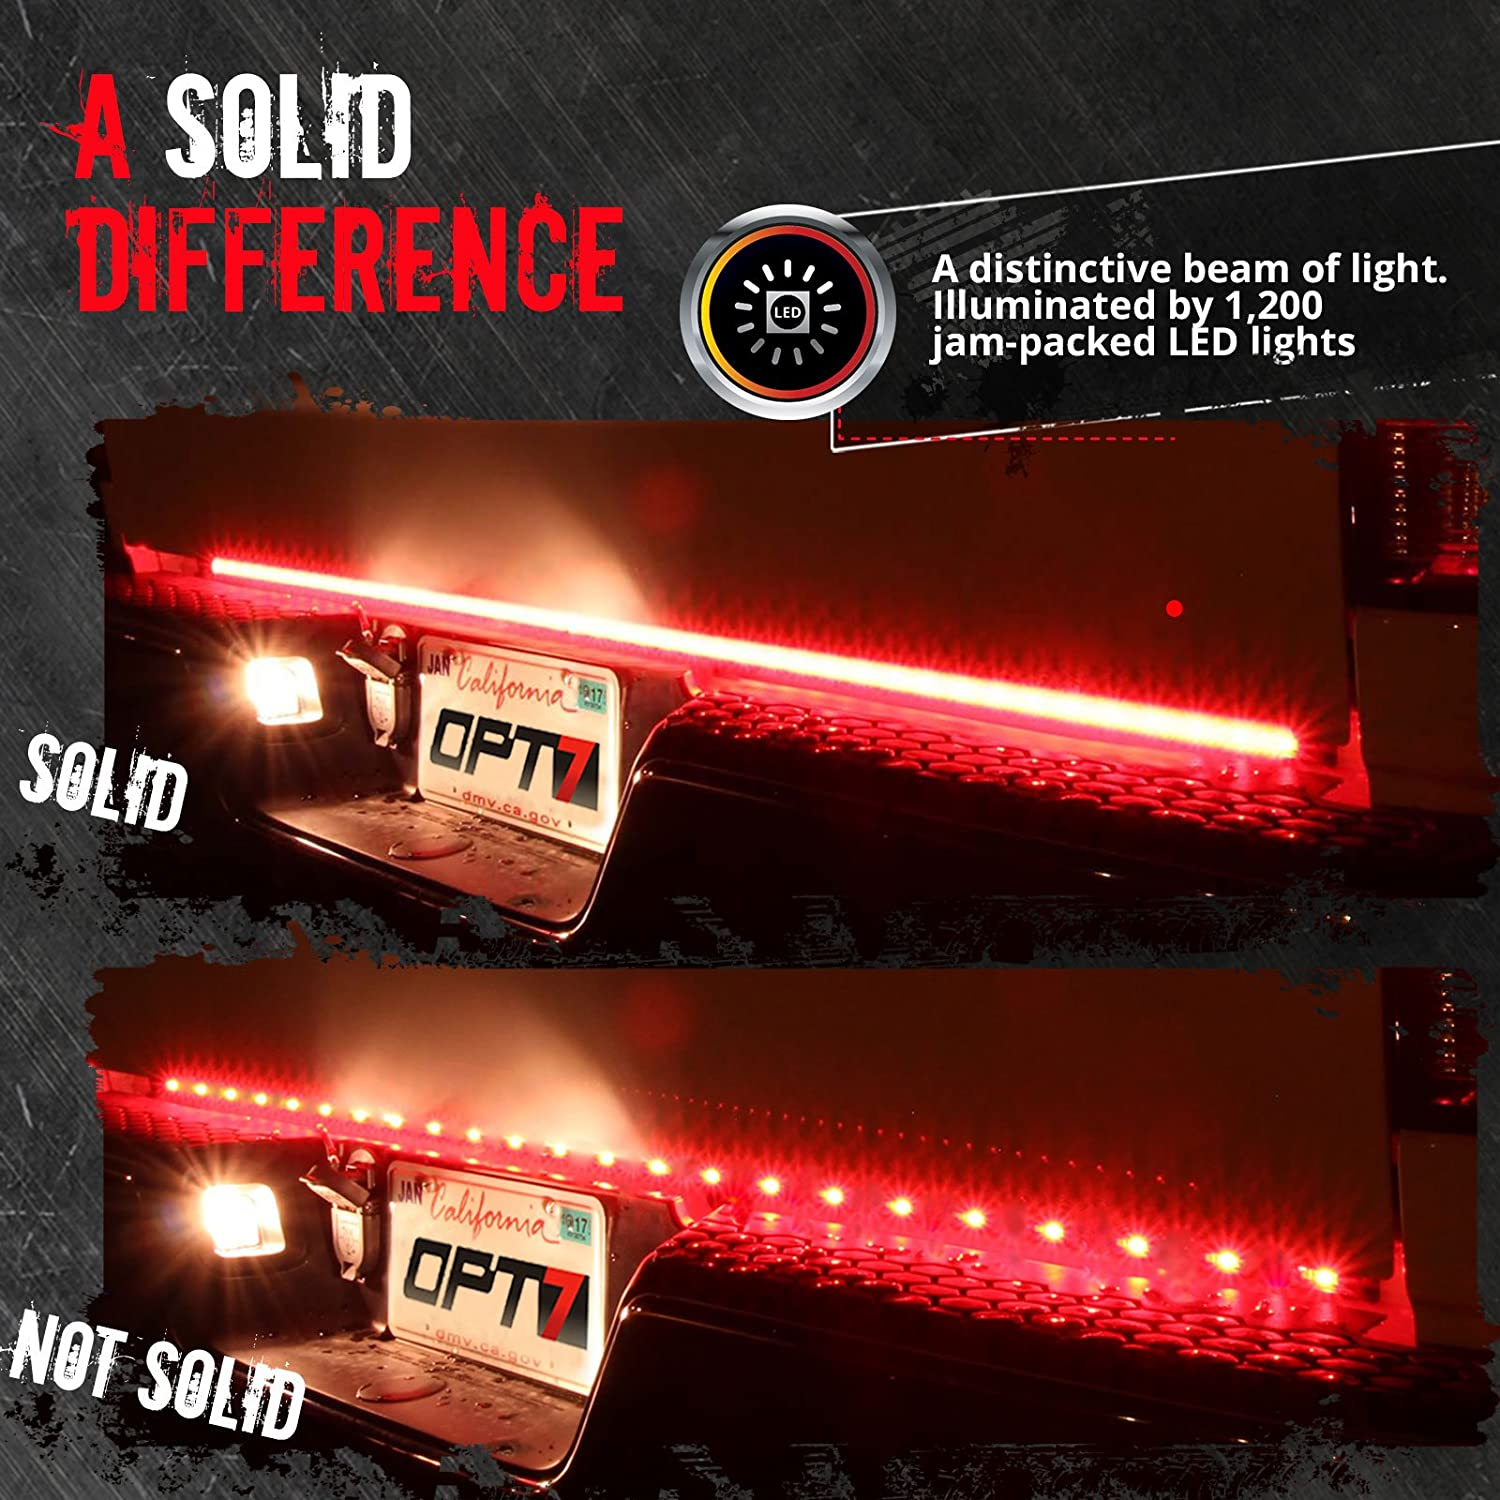 Opt7 60 Redline Triple Led Tailgate Light Bar W Make This Temperature Indicator Circuit With Sequential Display Amber Turn Signal 1200 Solid Beam Weatherproof No Drill Install Full